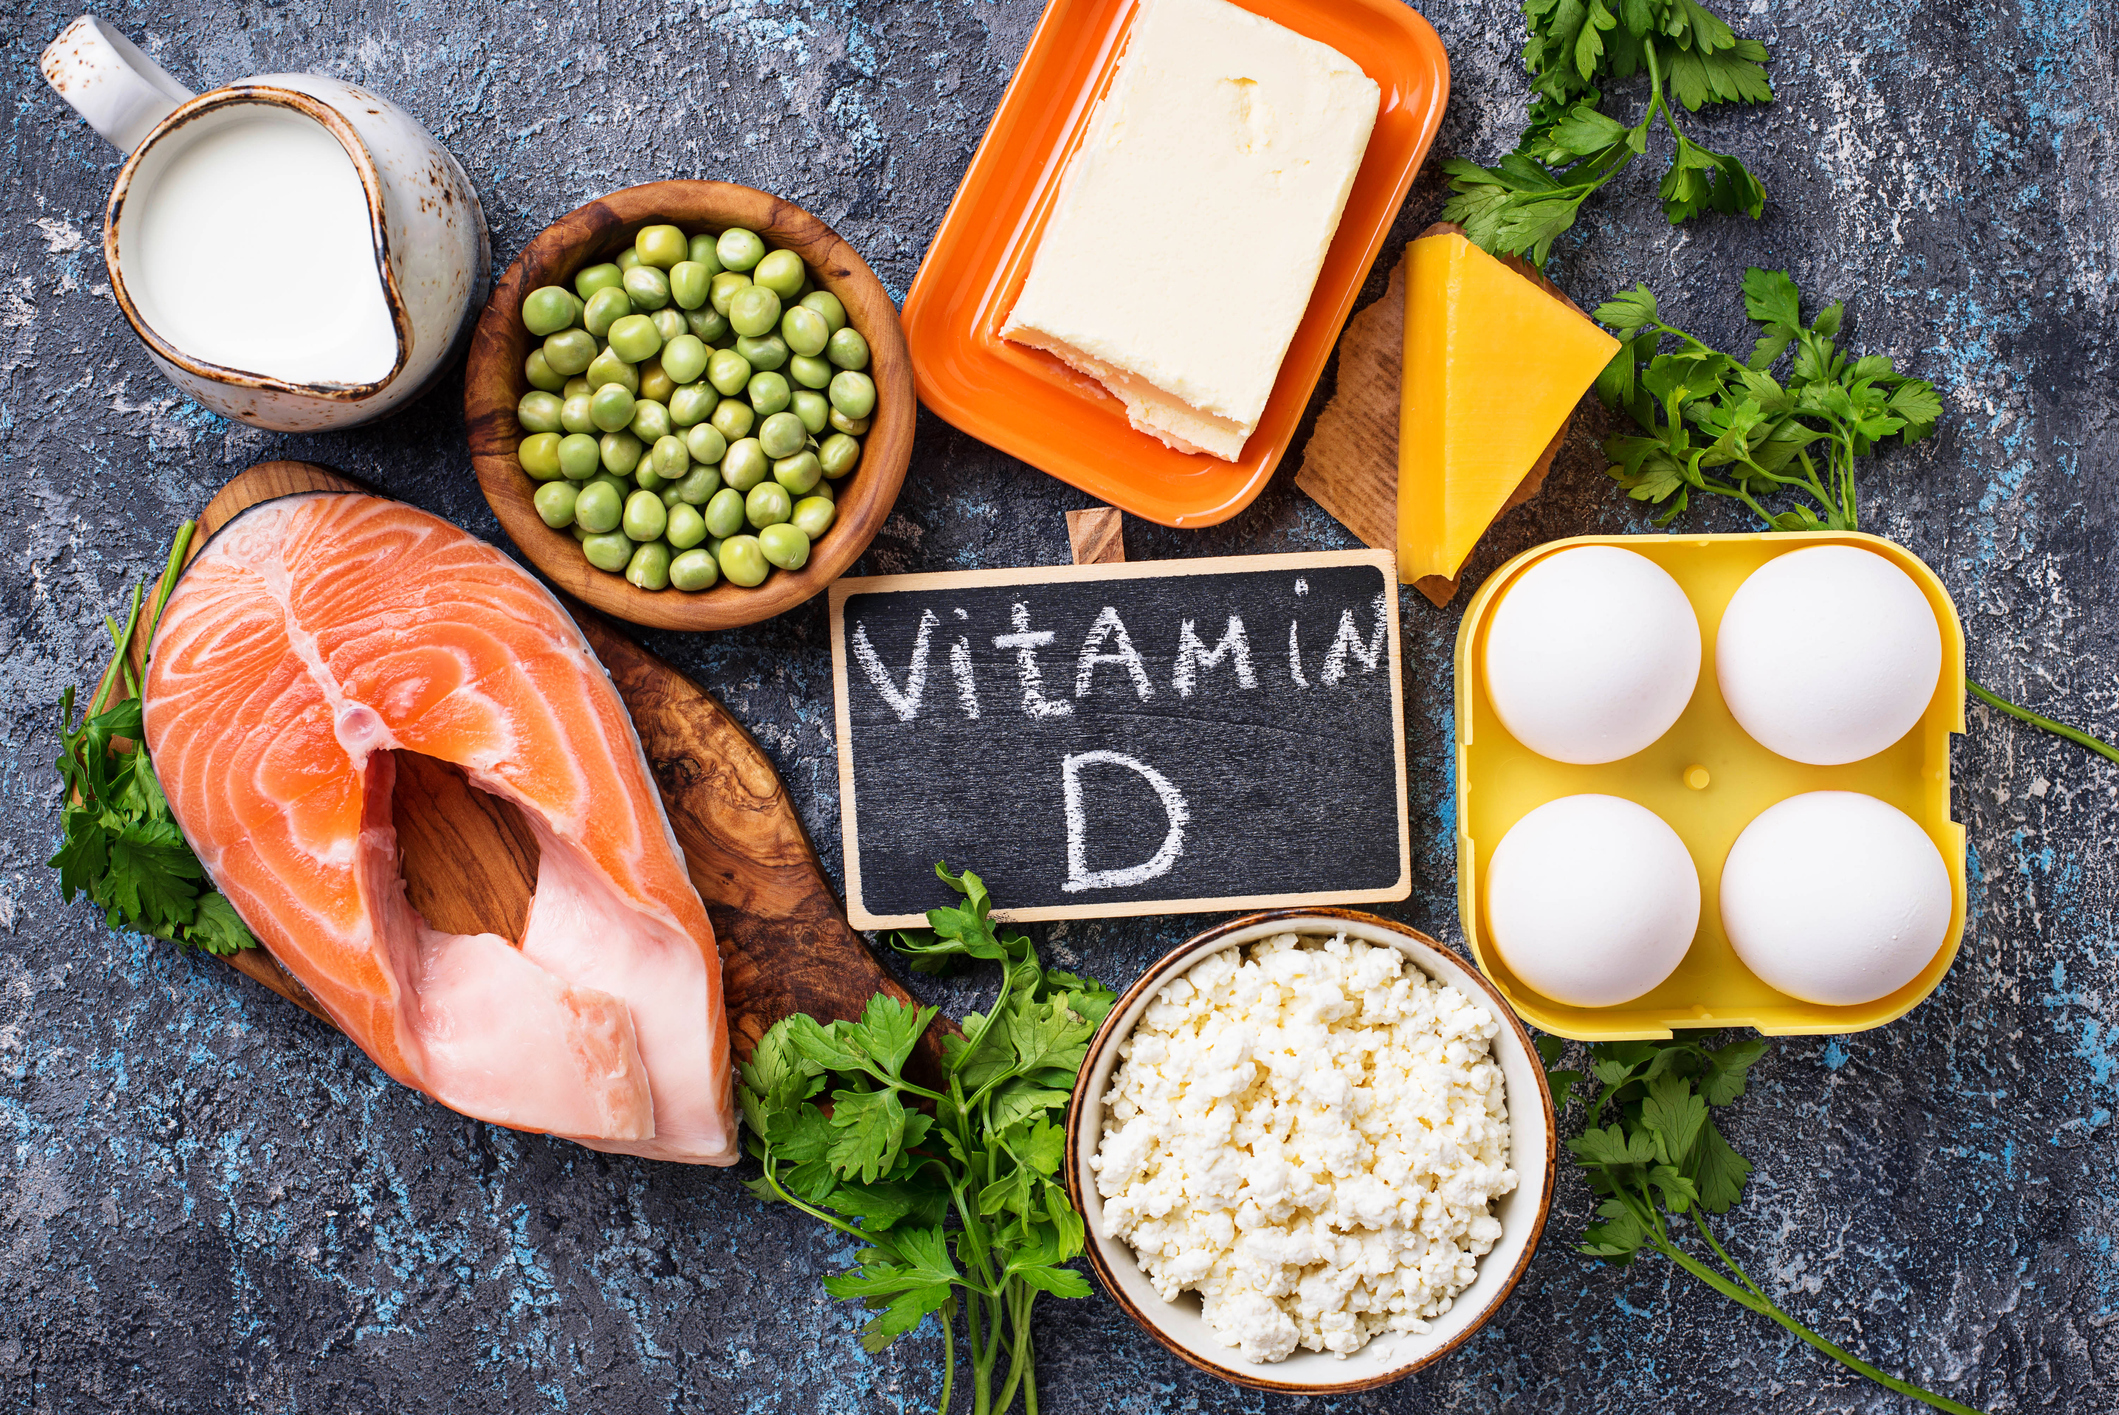 Vitamin D may not help depression in middle-aged and older adults: study - fox